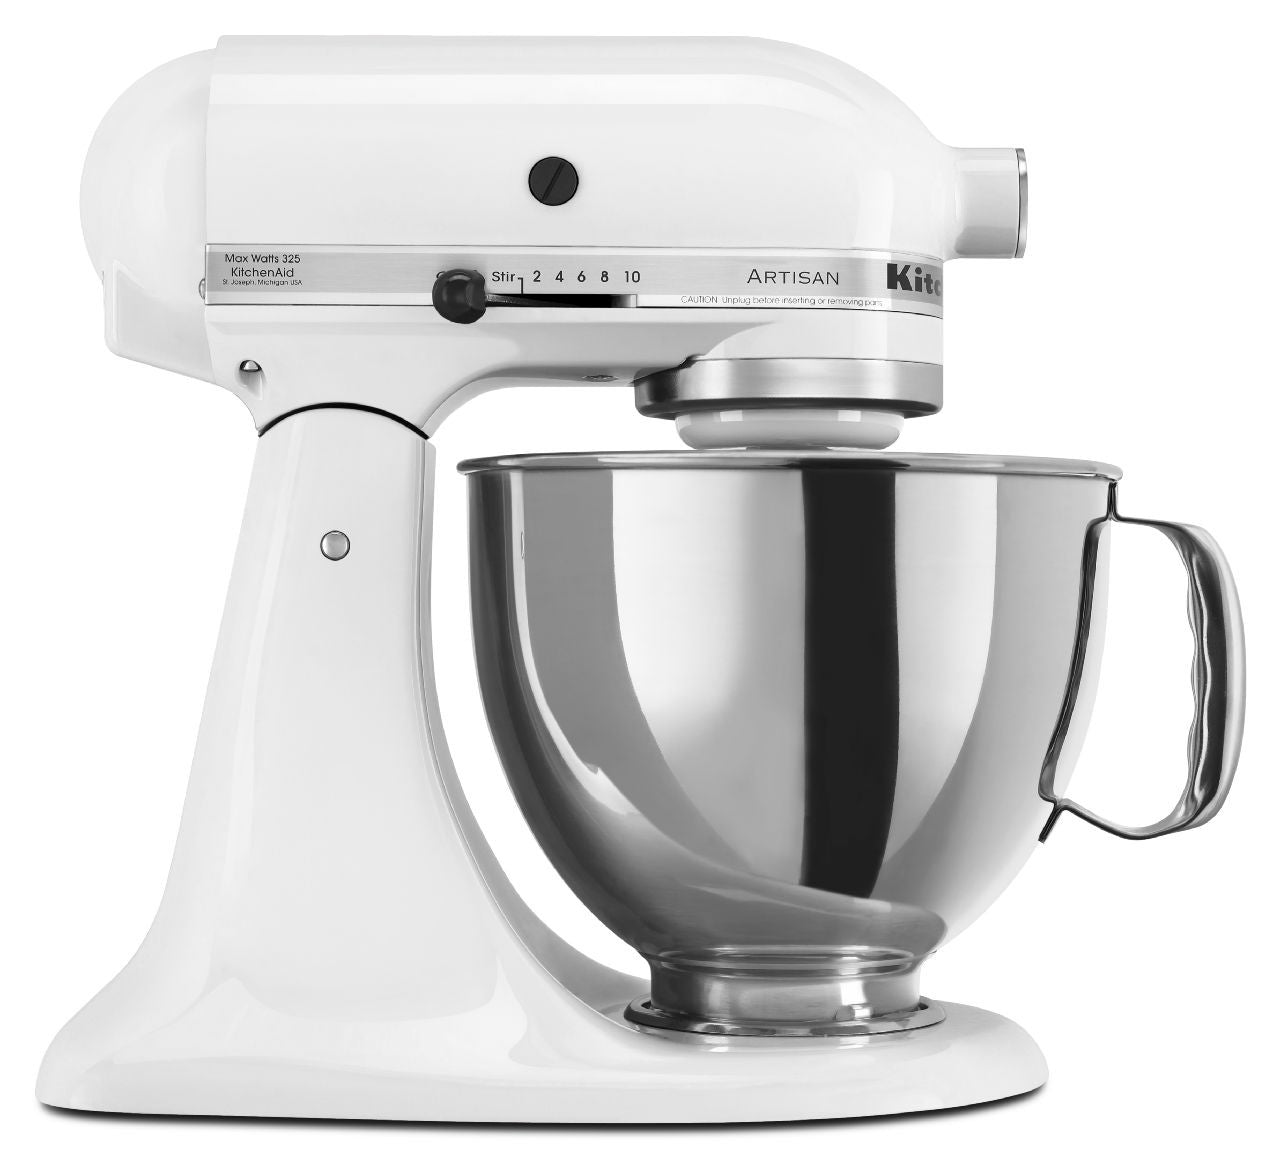 Kitchenaid 5 Qt. Artisan Series with Pouring Shield - White KSM150PSWH